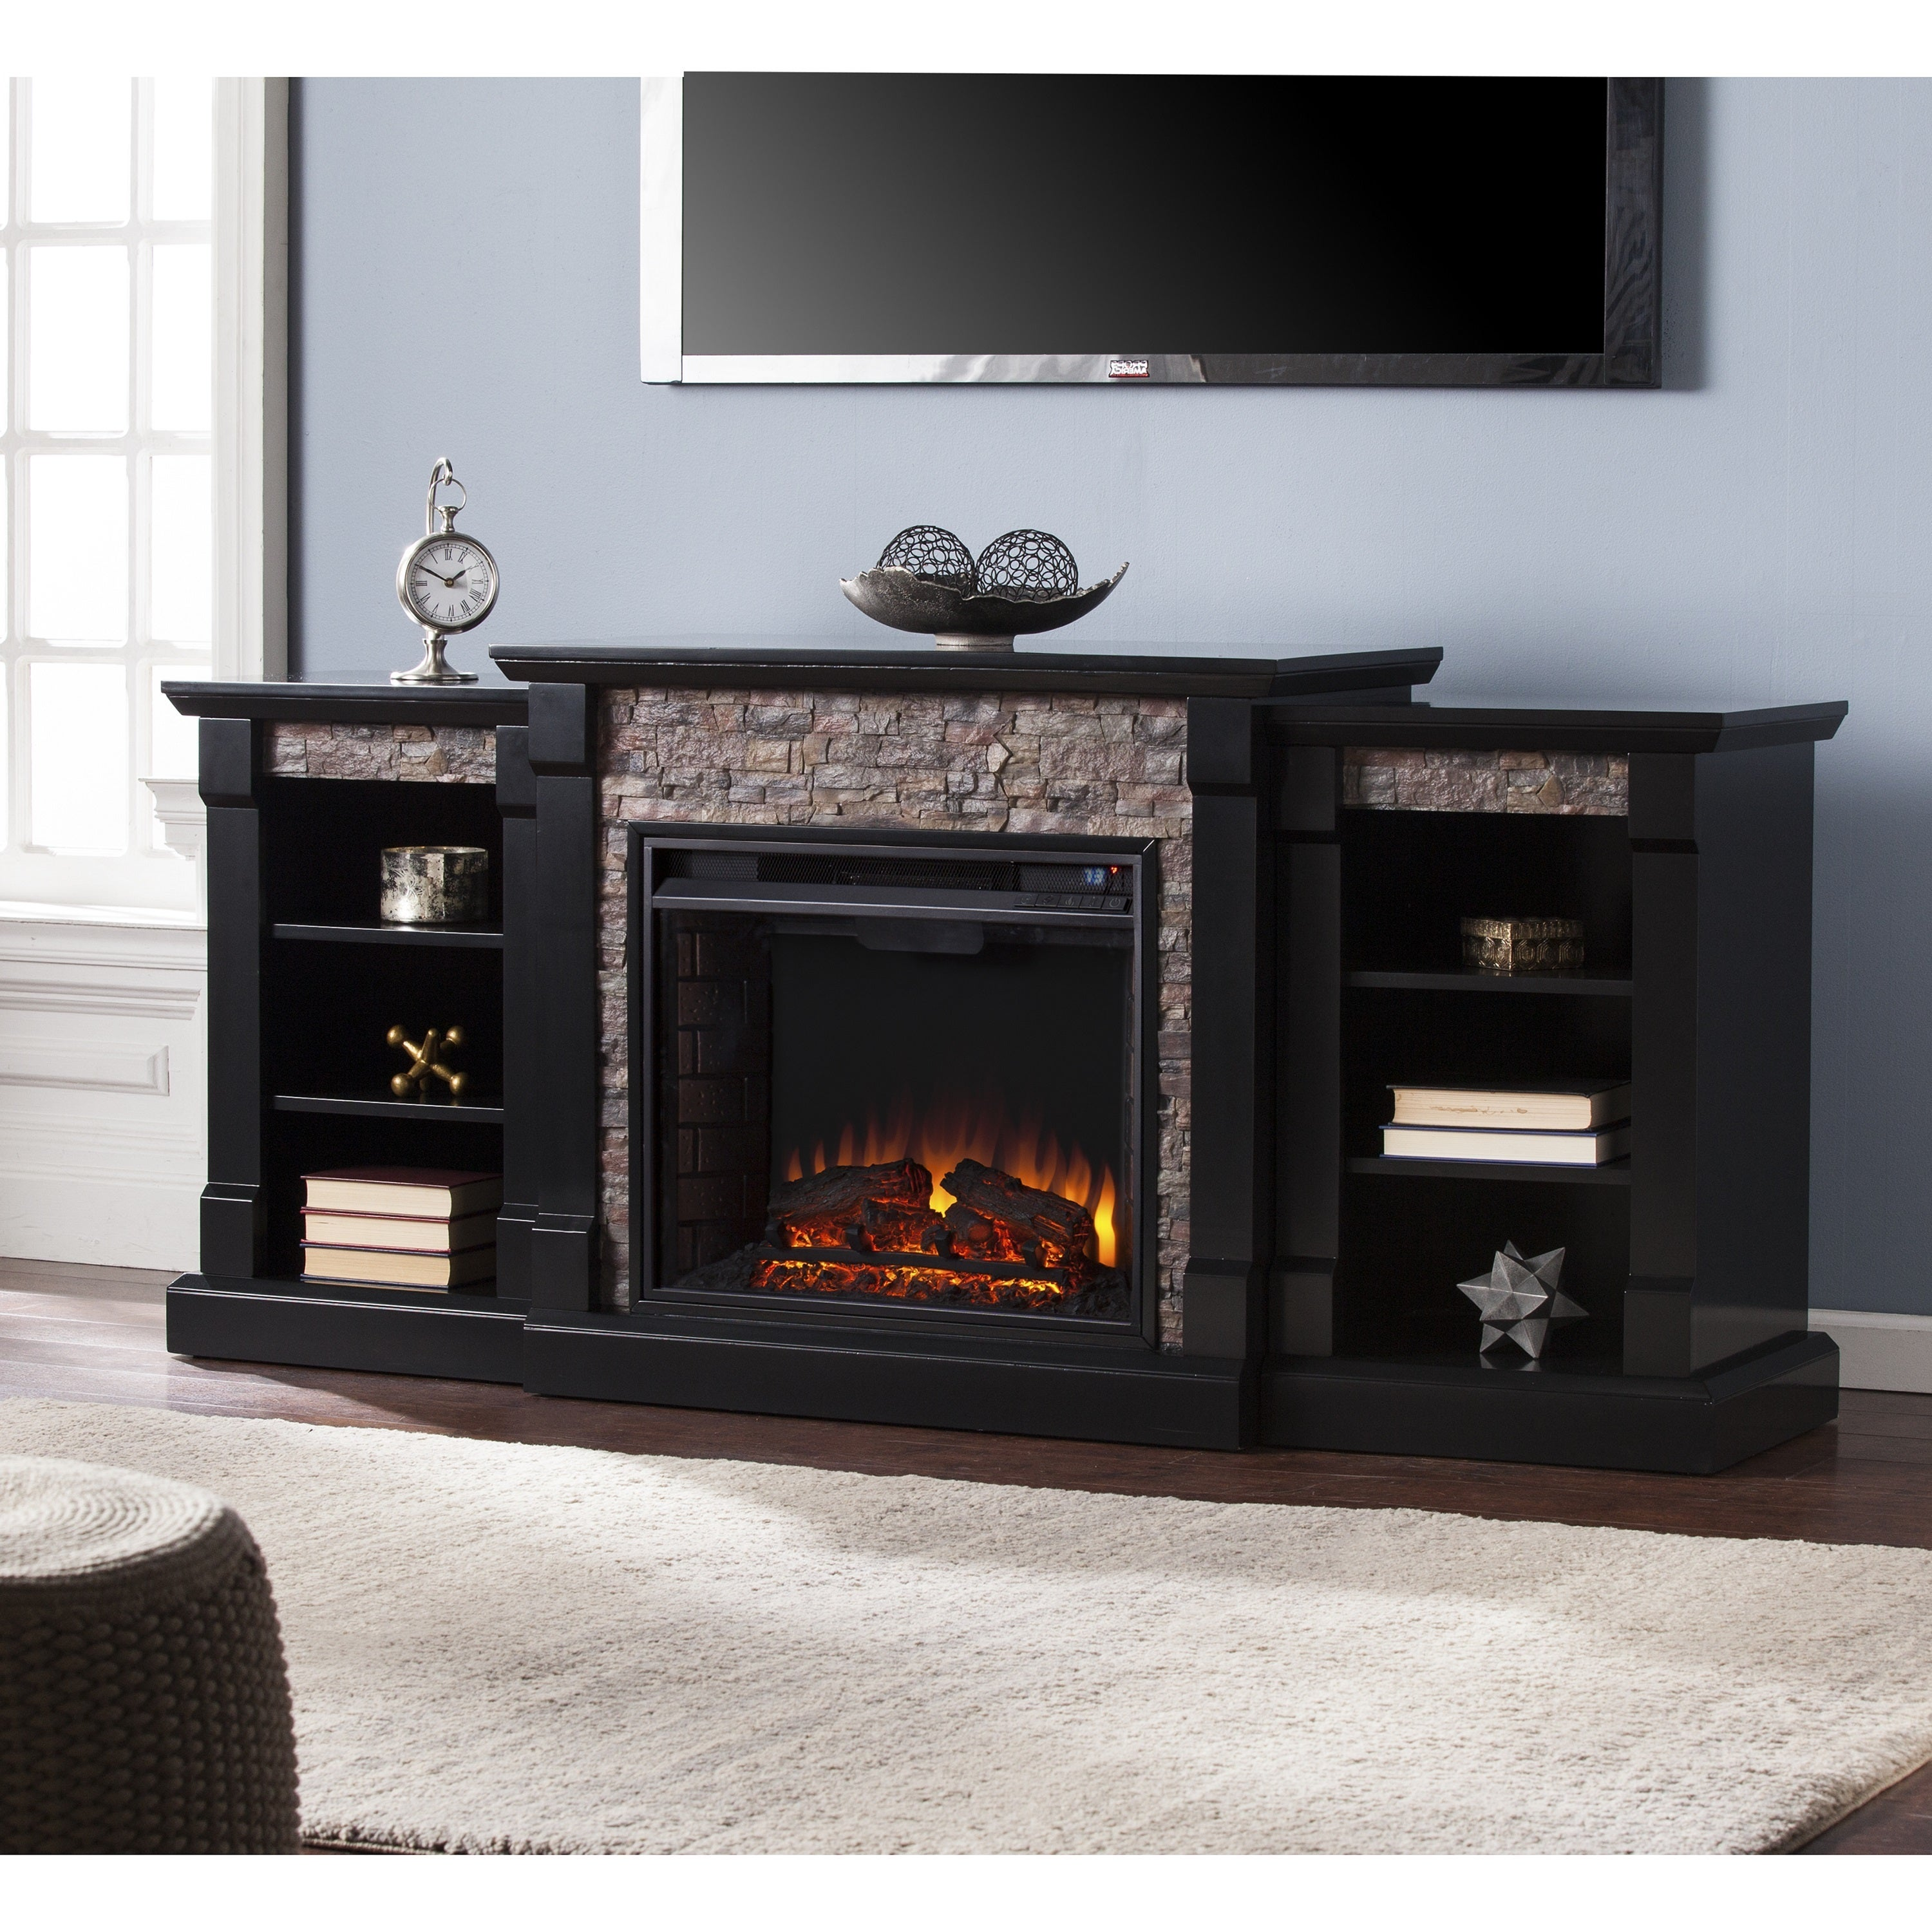 xl electric fireplace sided amantii indoor outdoor tru store view products